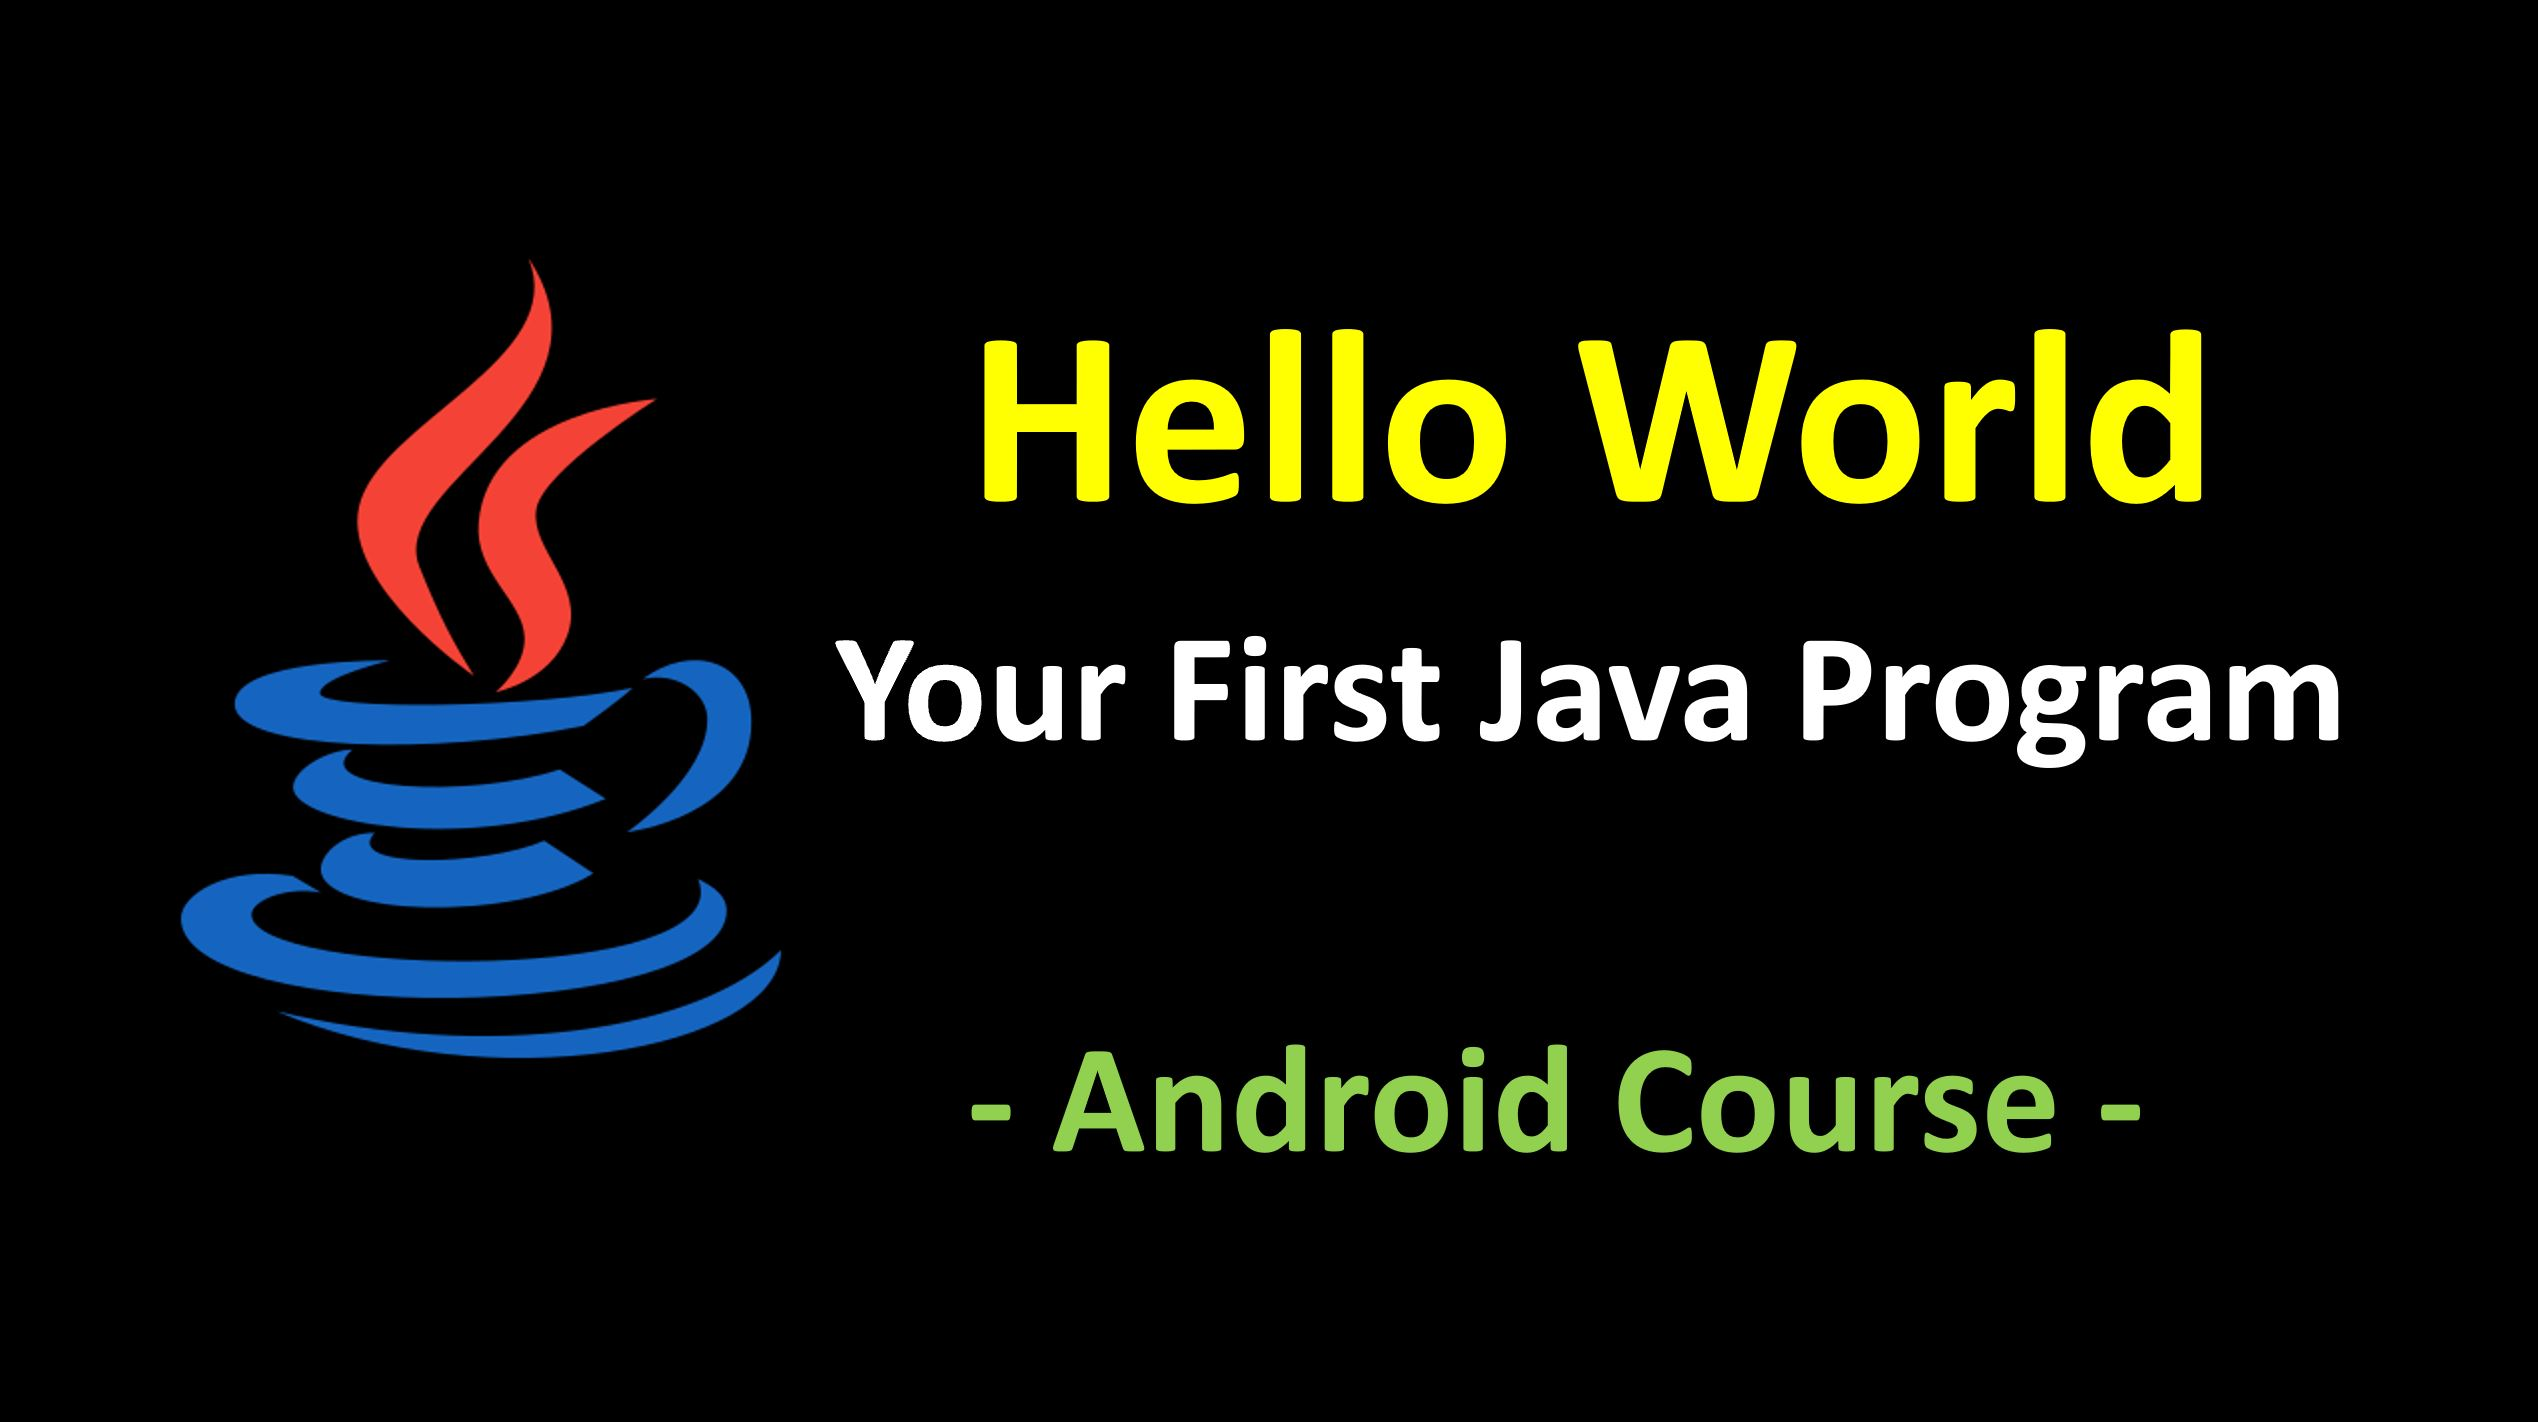 Your First Java Program - Hello World